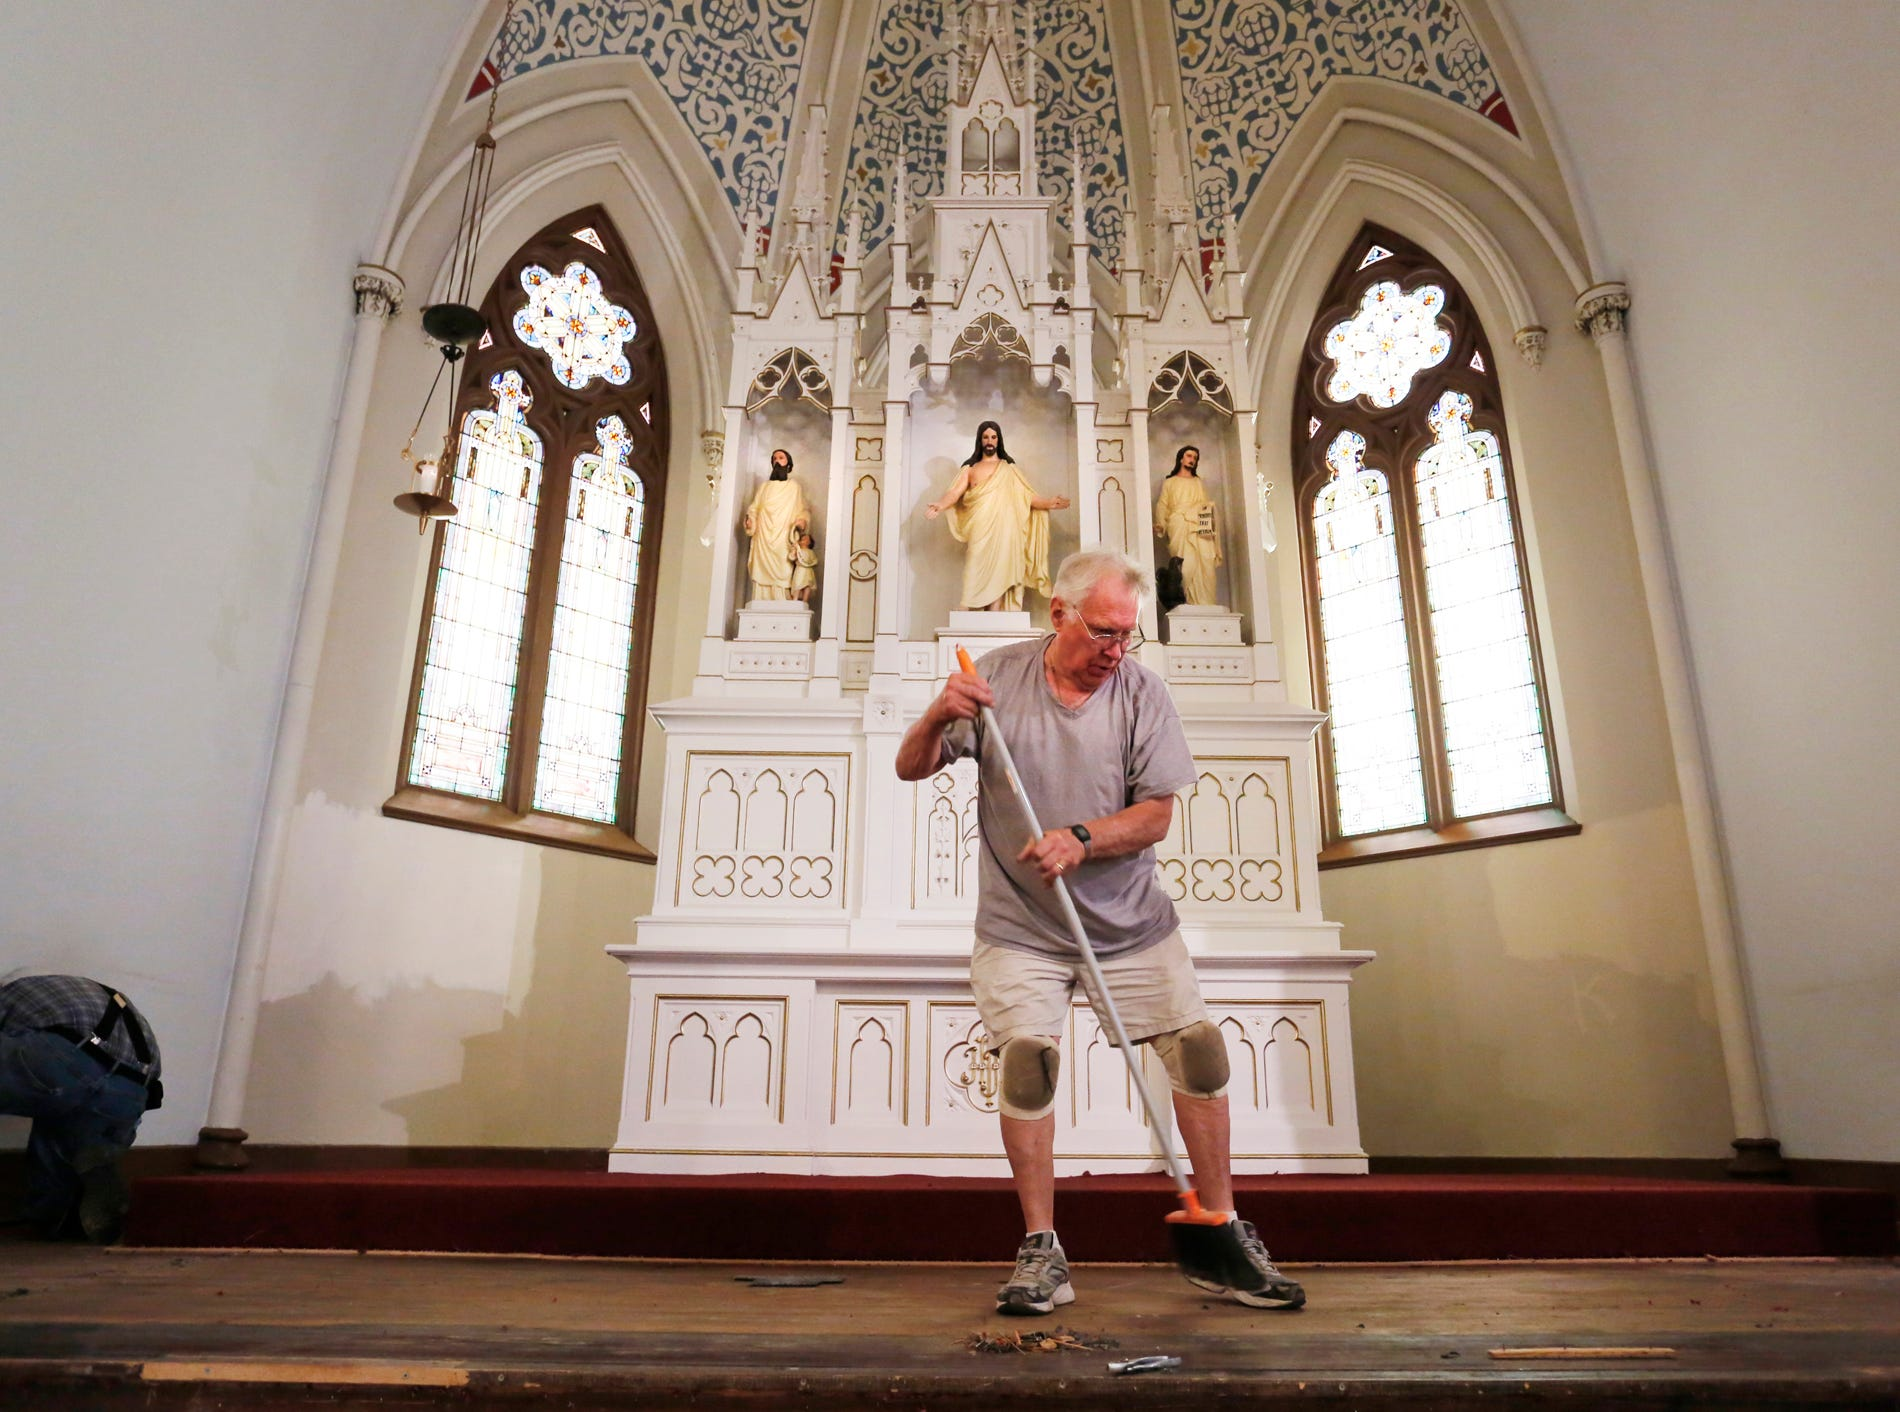 "Irv Dieterle sweeps up debris at the altar as restoration work takes place inside St. James Lutheran Church Monday, July 9, 2018, in Lafayette. About 30 members of the congregation are helping out with the work taking place inside the sanctuary of the church. ""We restored the roof and exterior walls the last two years, and now we're working on the inside,"" said Julie Grott. ""Hopefully we'll be back in here by mid-November,"" Grott said. Services are being held in the school cafeteria while the restoration work is being completed."